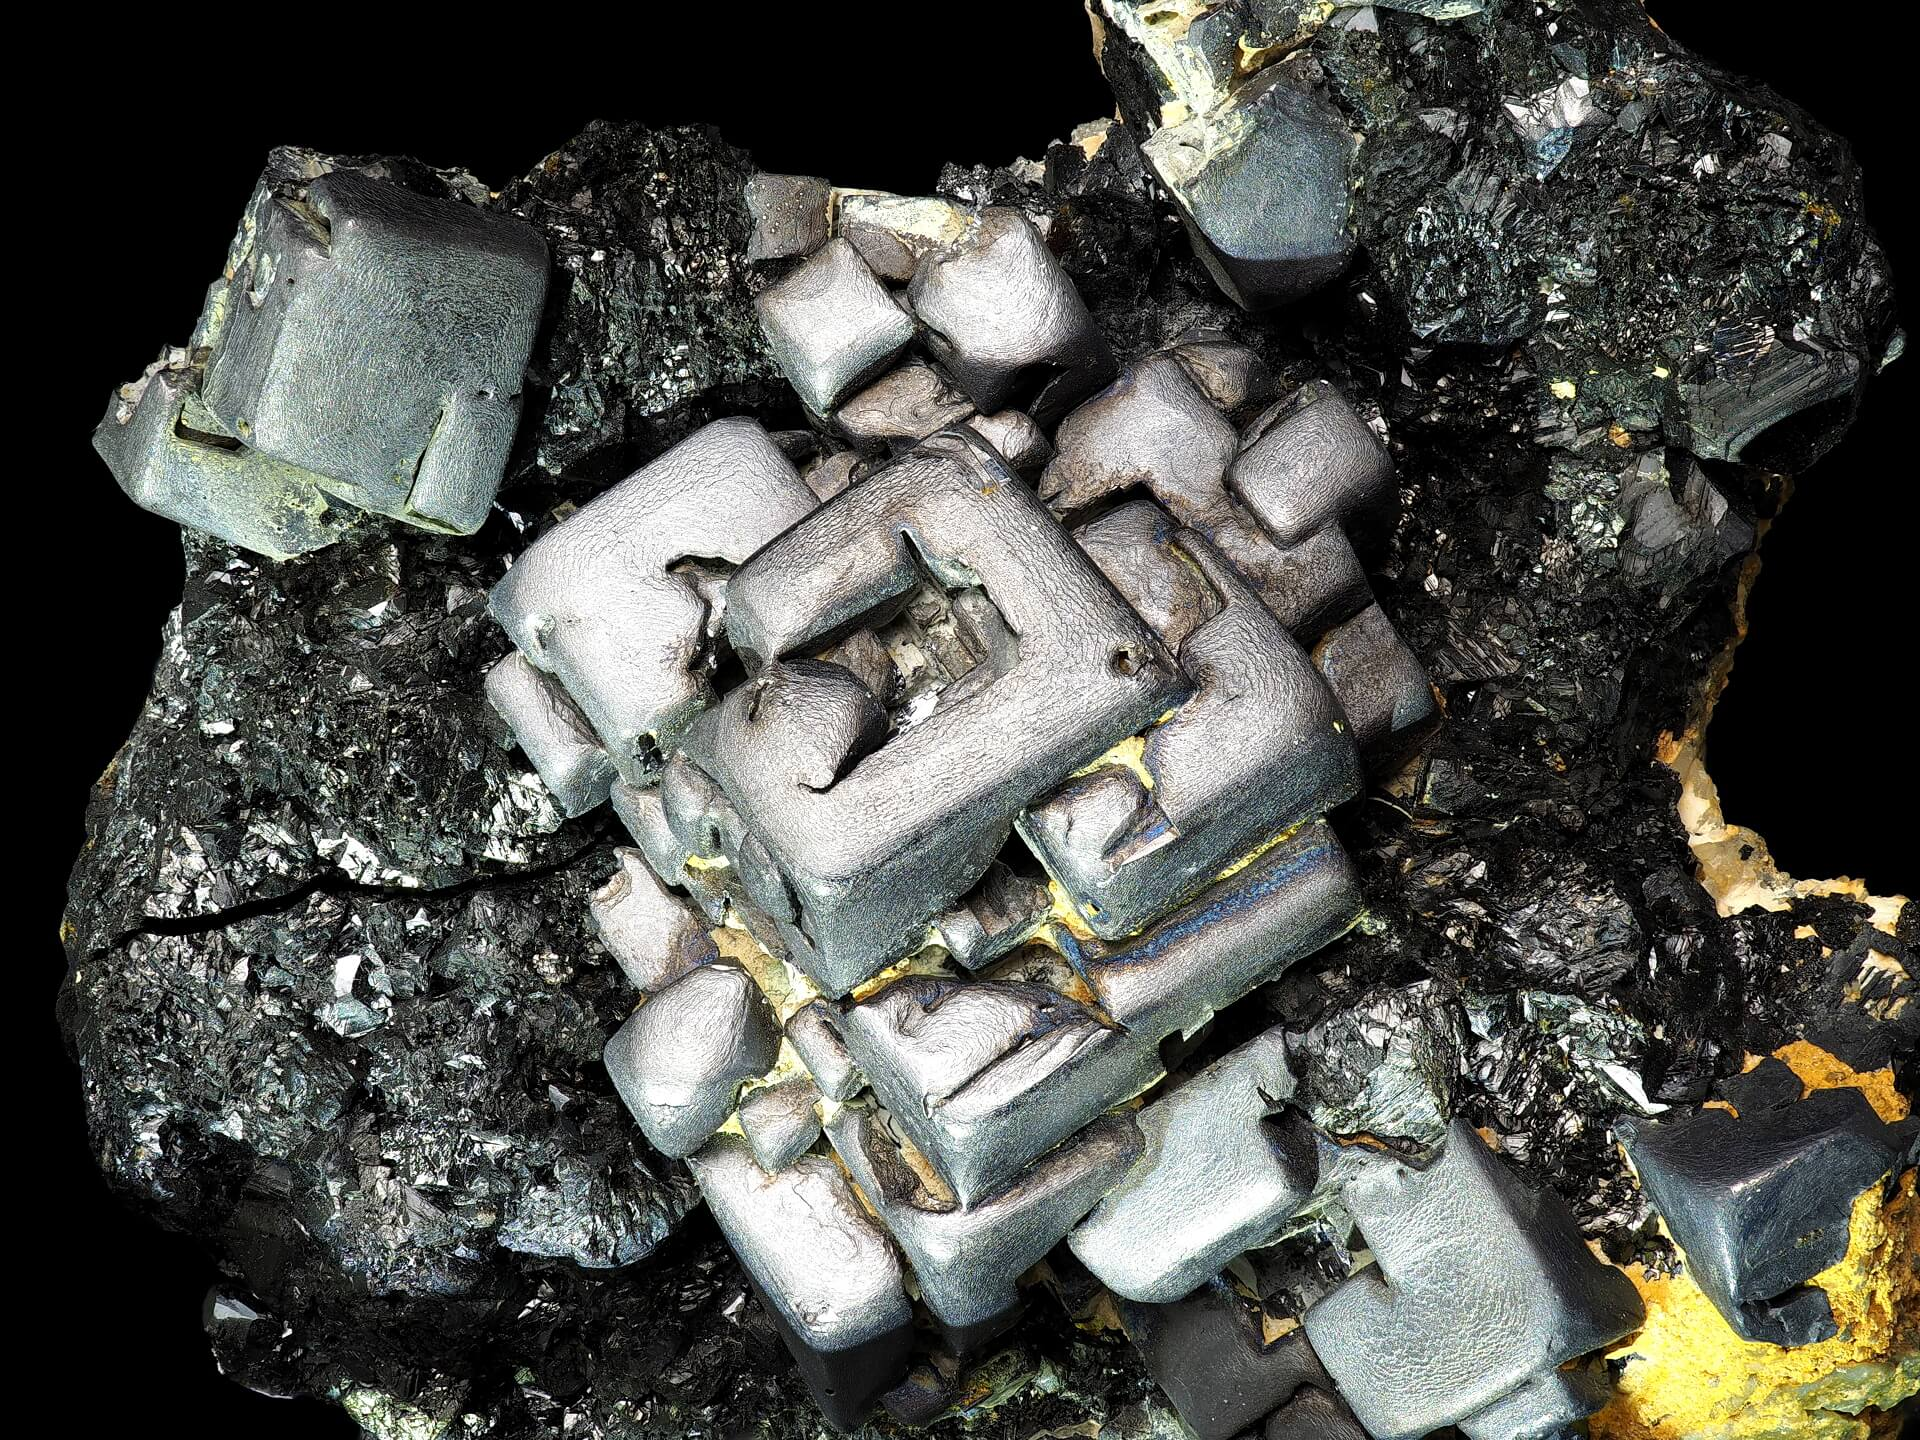 Large square Galena crystals are stacked upon each other, with the top crystal showing hollow skeletal form.